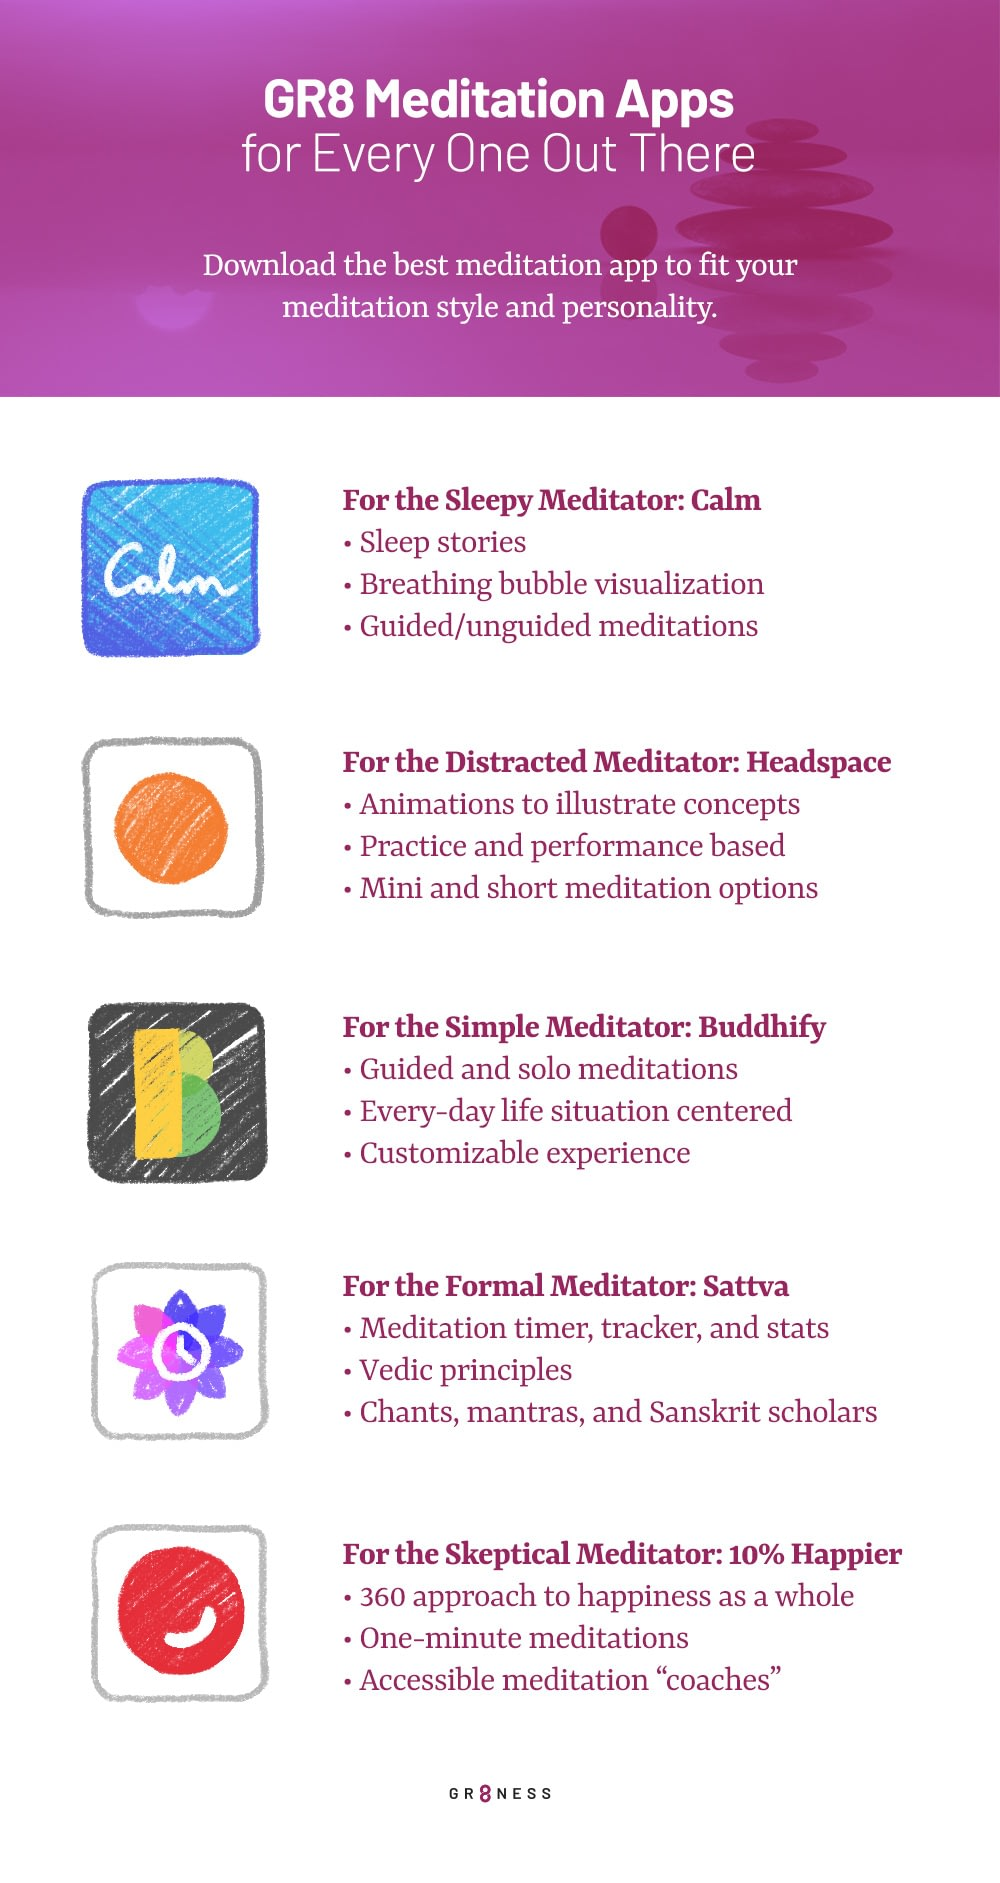 List of recommended meditation apps to download